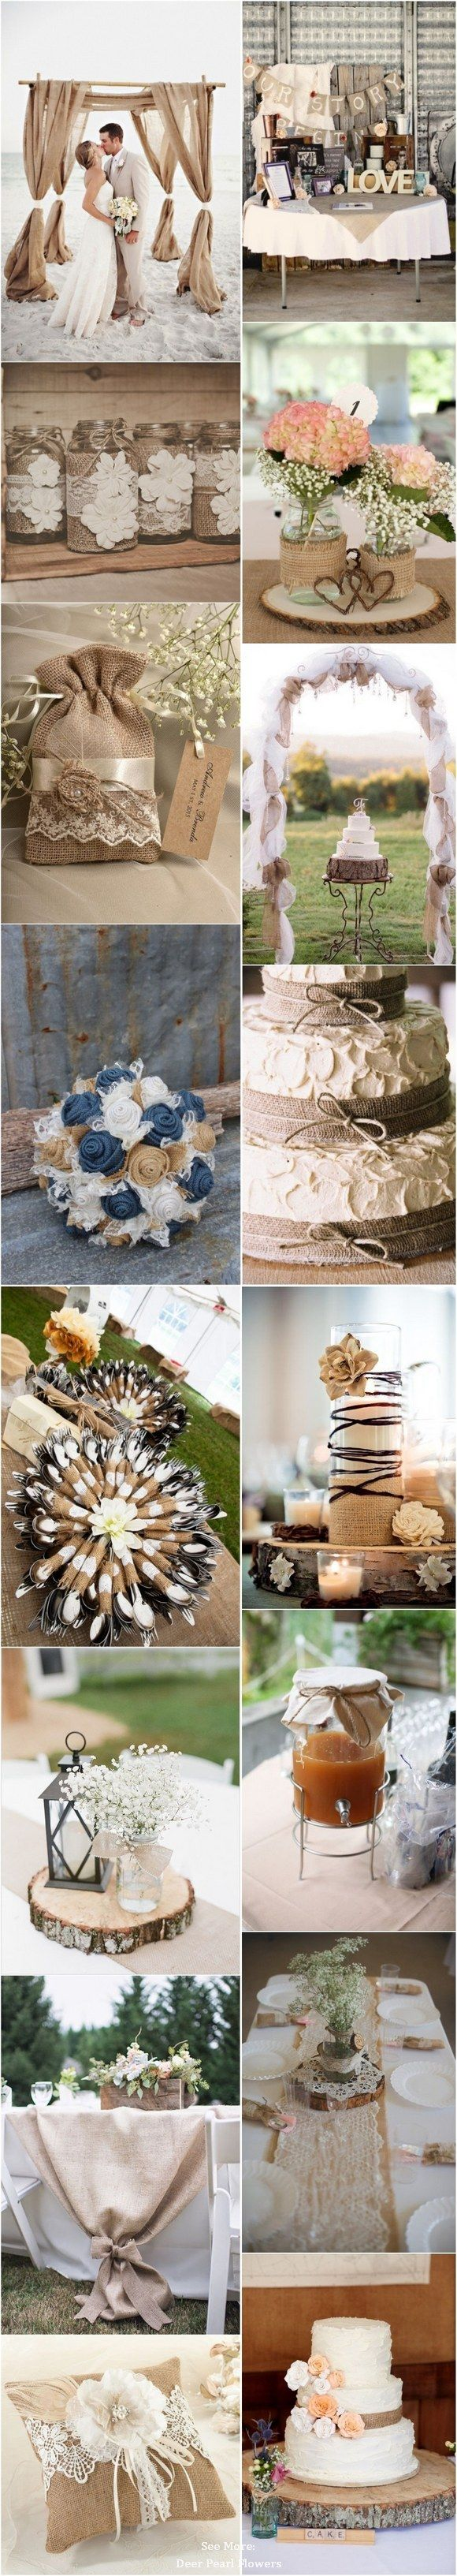 55 Chic-Rustic Burlap and Lace Wedding Ideas  / http://www.deerpearlflowers.com/50-chic-rustic-burlap-and-lace-wedding-ideas/